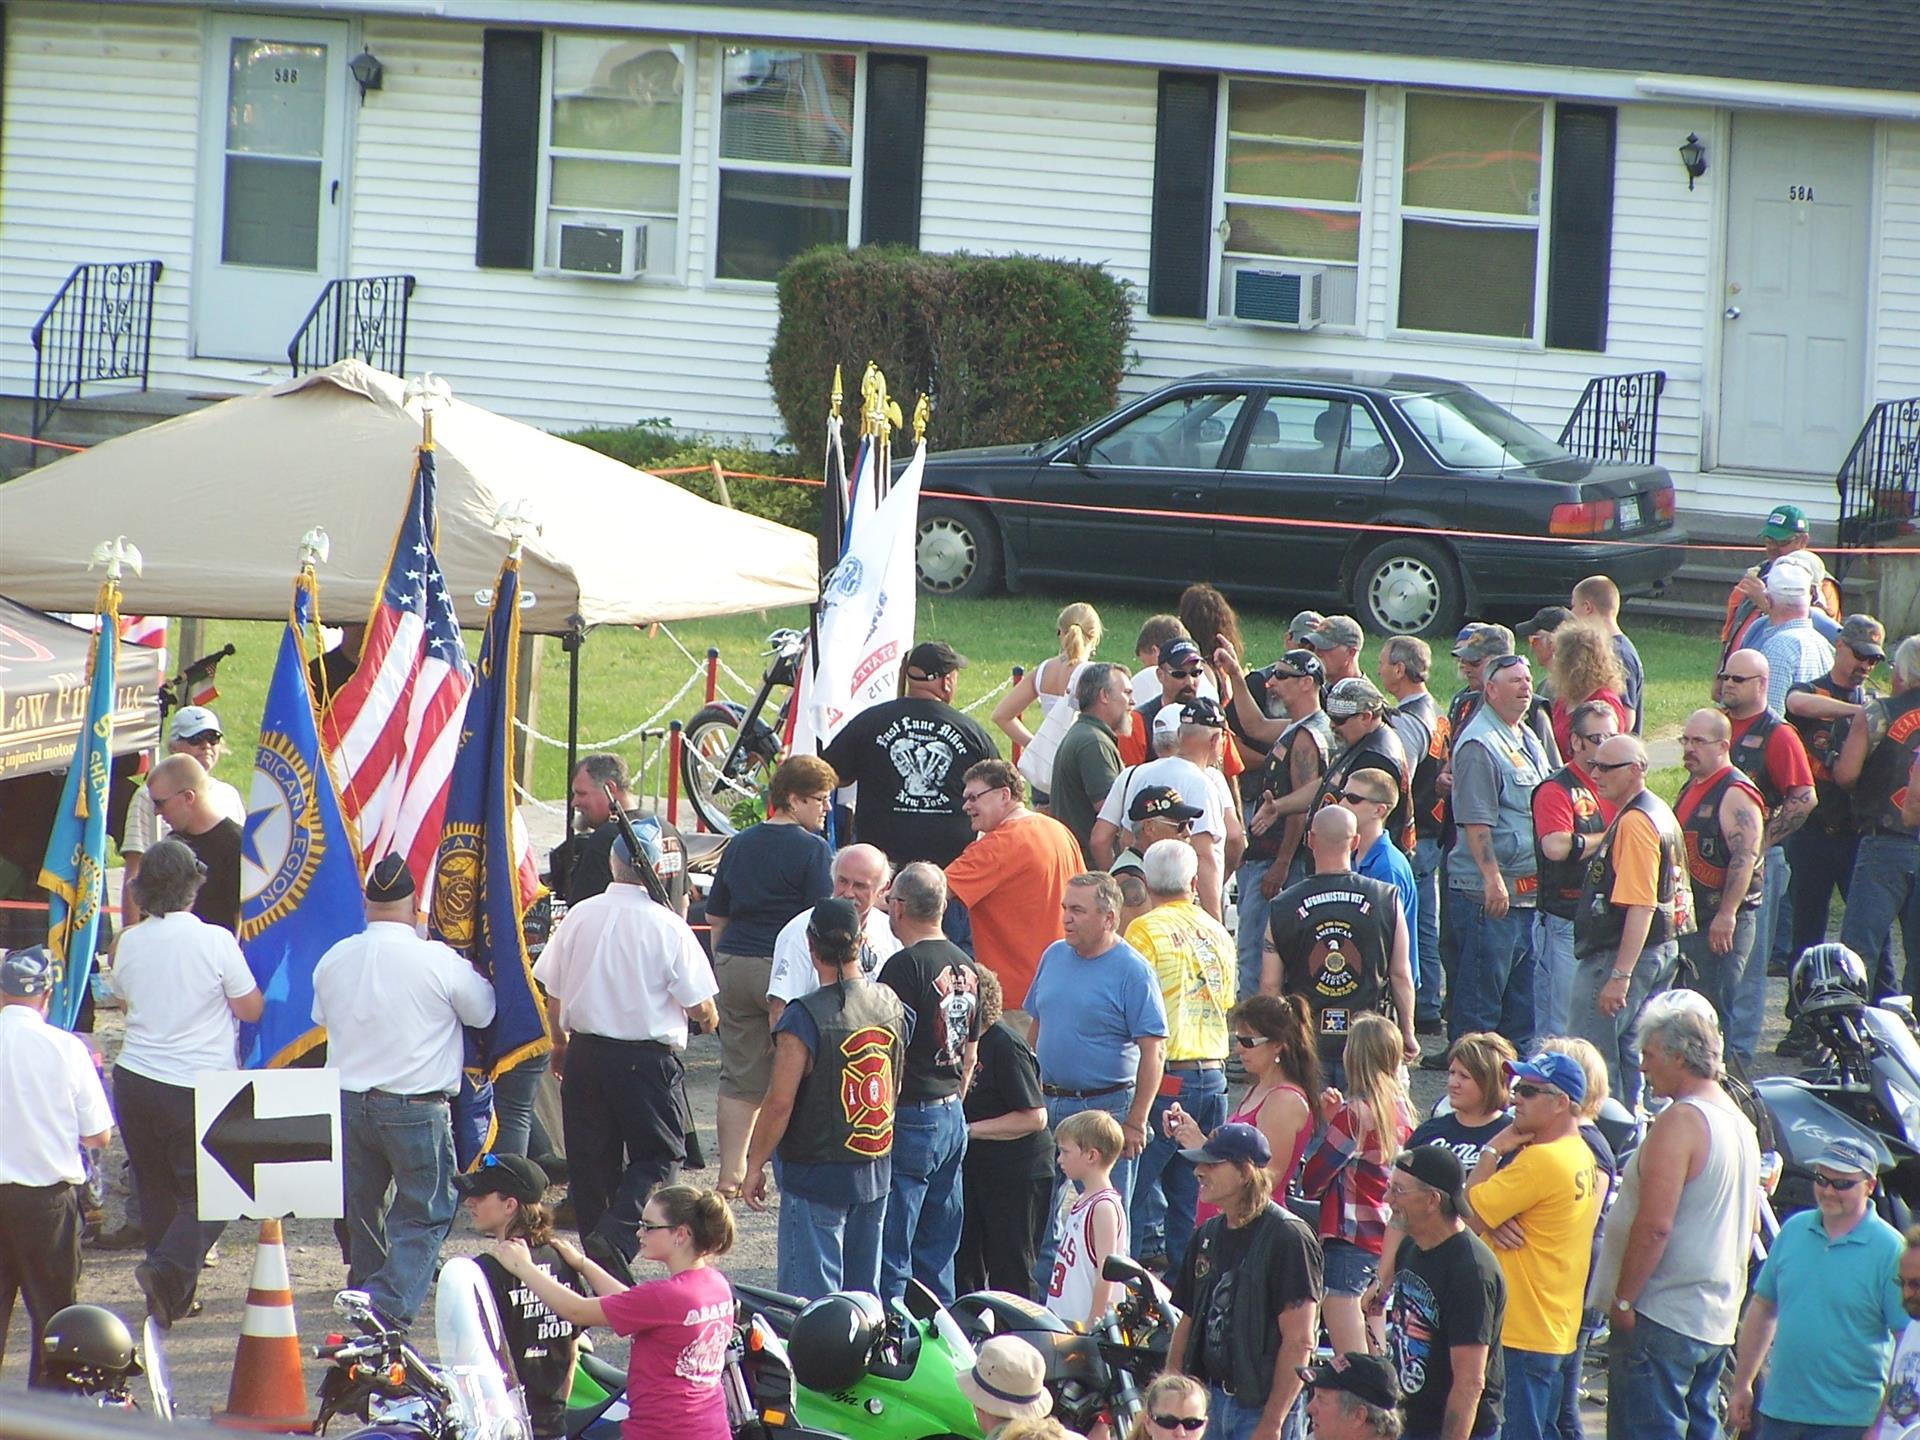 Crowd gathering at bike night